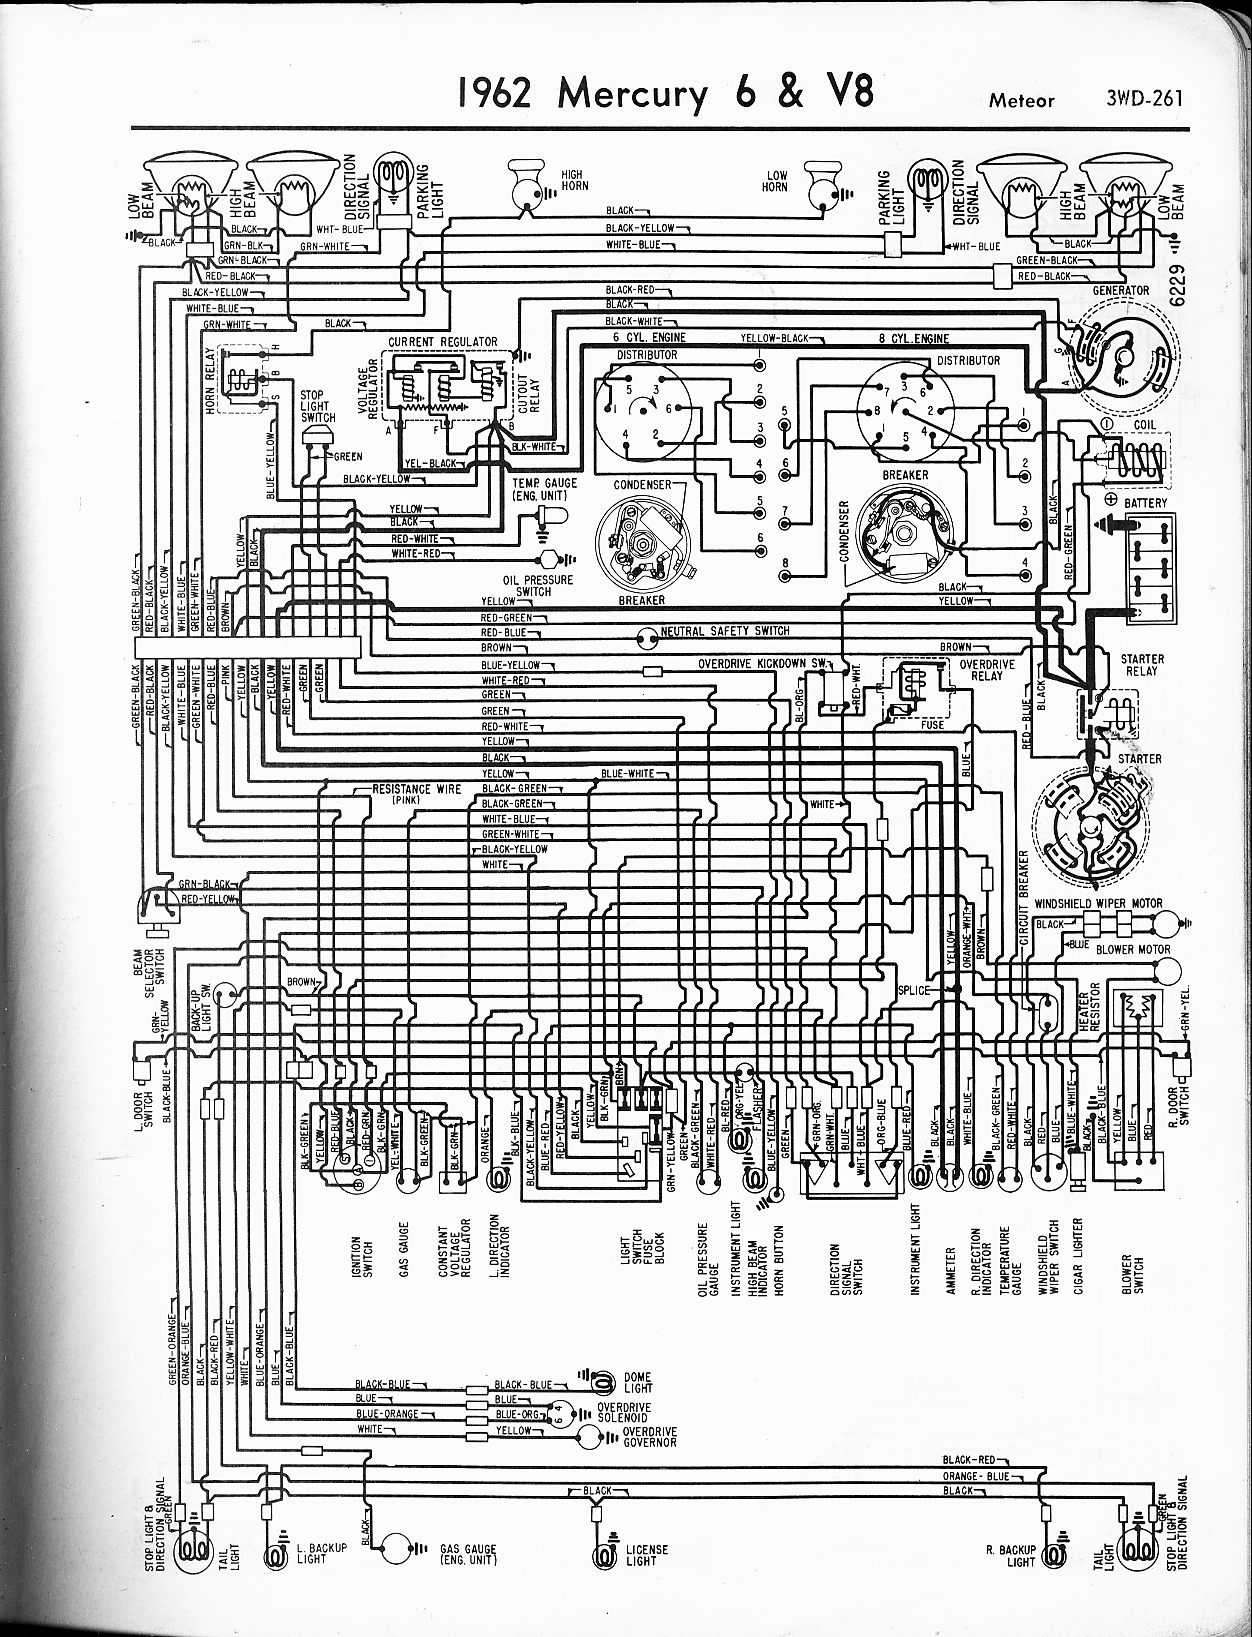 MWire5765 261 mercury wiring diagrams the old car manual project 1963 mercury comet wiring diagram at soozxer.org